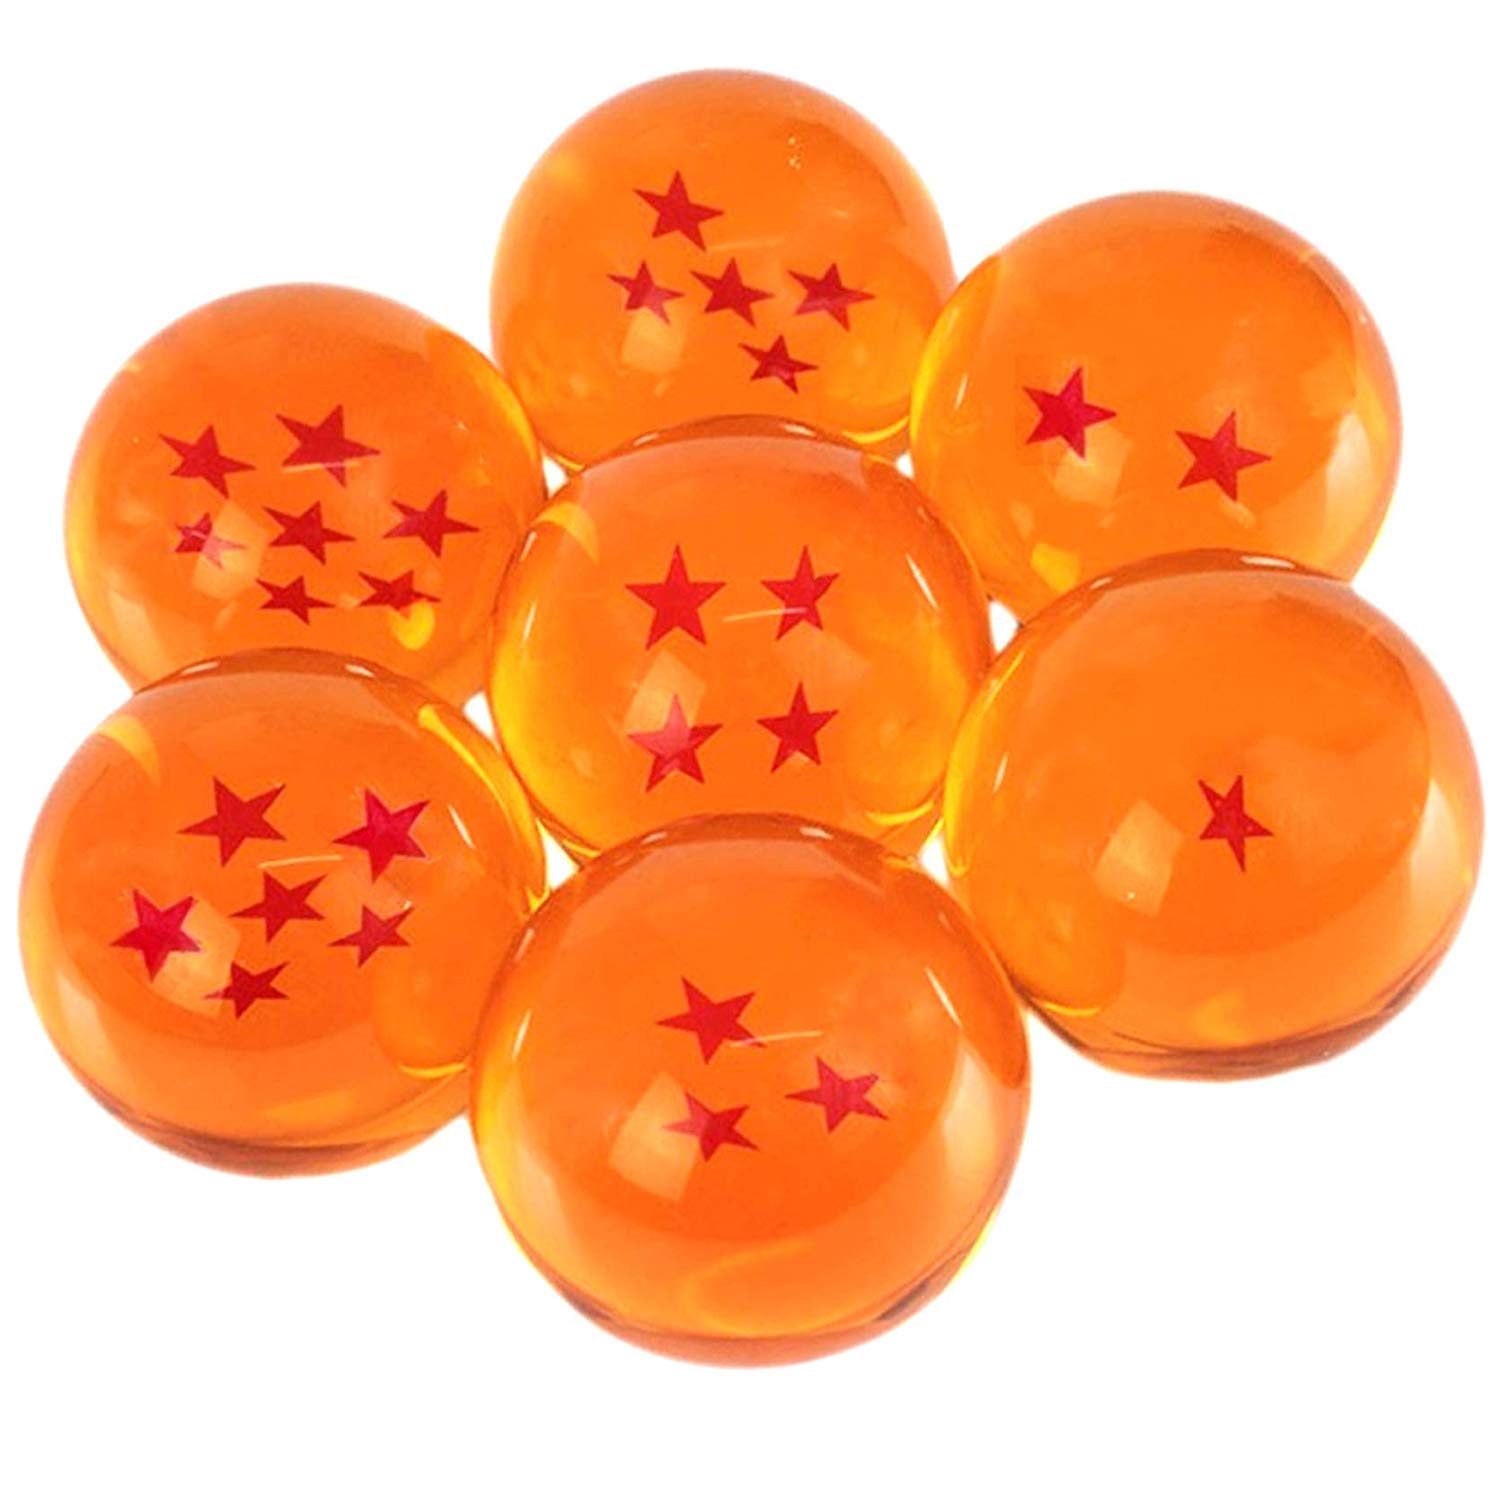 PLAYOLY New Dragonball Z Stars Crystal Glass Ball 7pcs with Gift Box, Large 76MM in Diameter by PLAYOLY